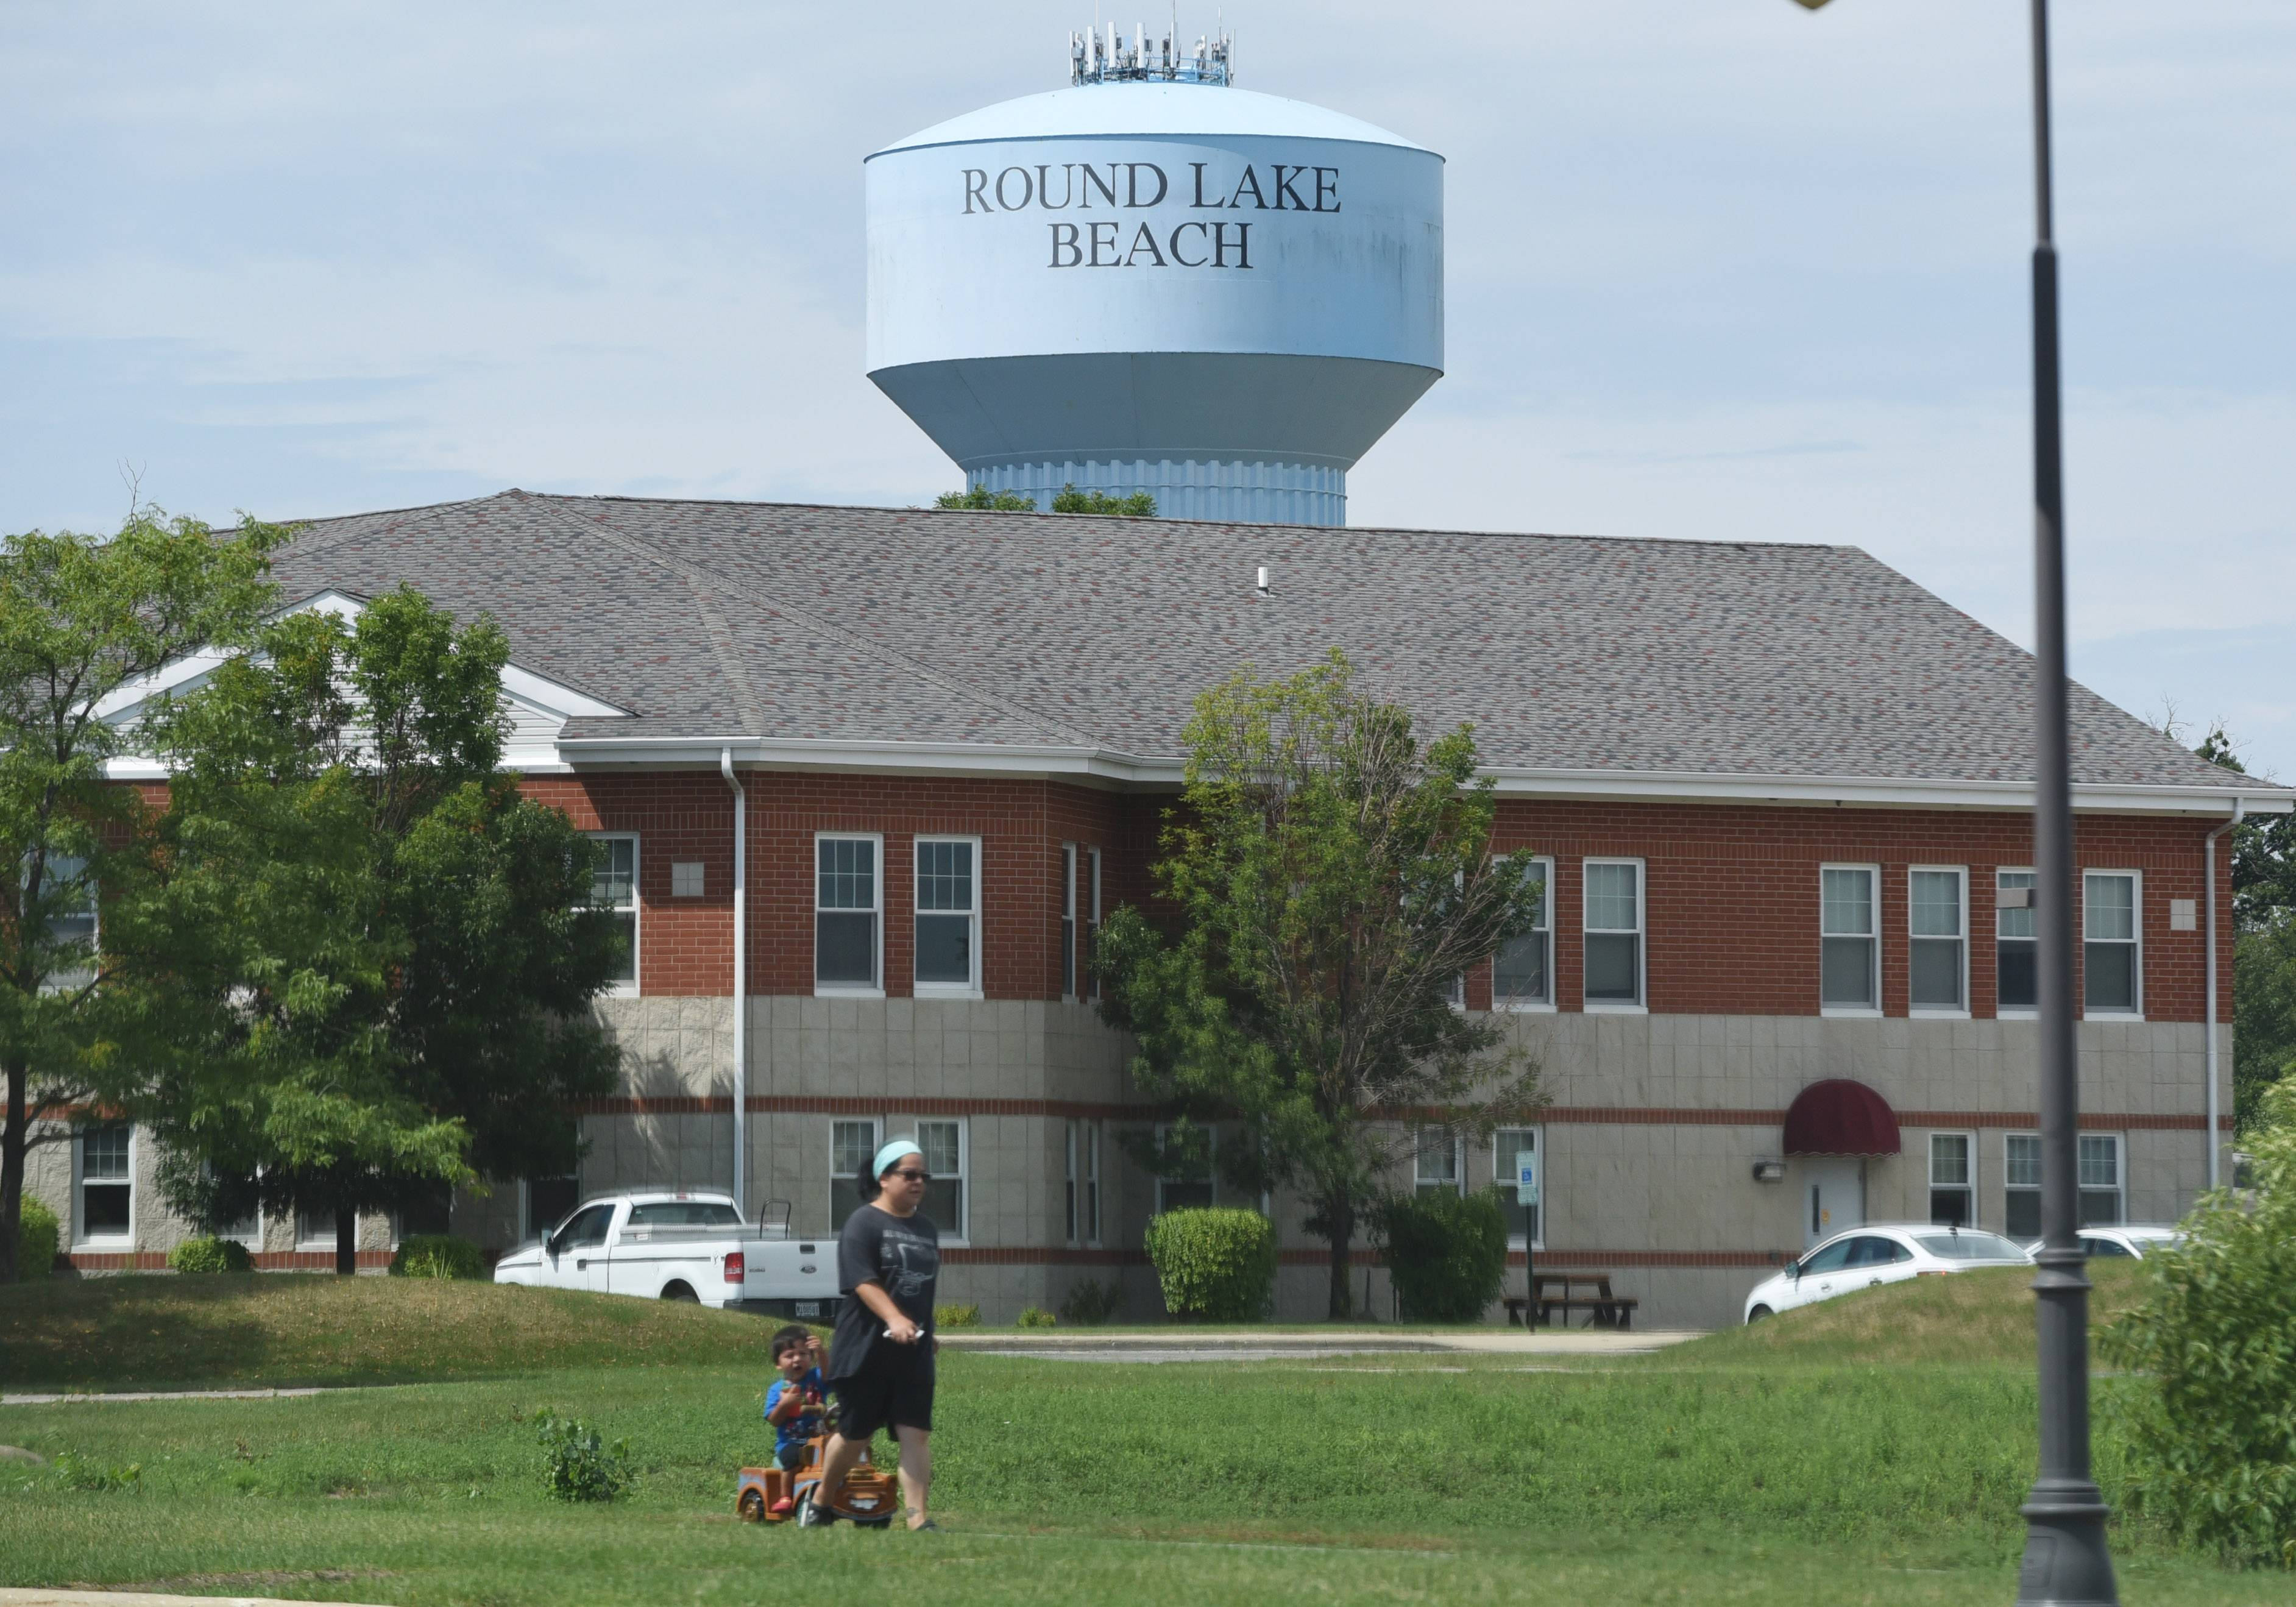 Voters in Round Lake Beach, Round Lake and Round Lake Park would be asked whether the three communities should be consolidated in a question being proposed for the November ballot. Round Lake Beach is the largest of the three.